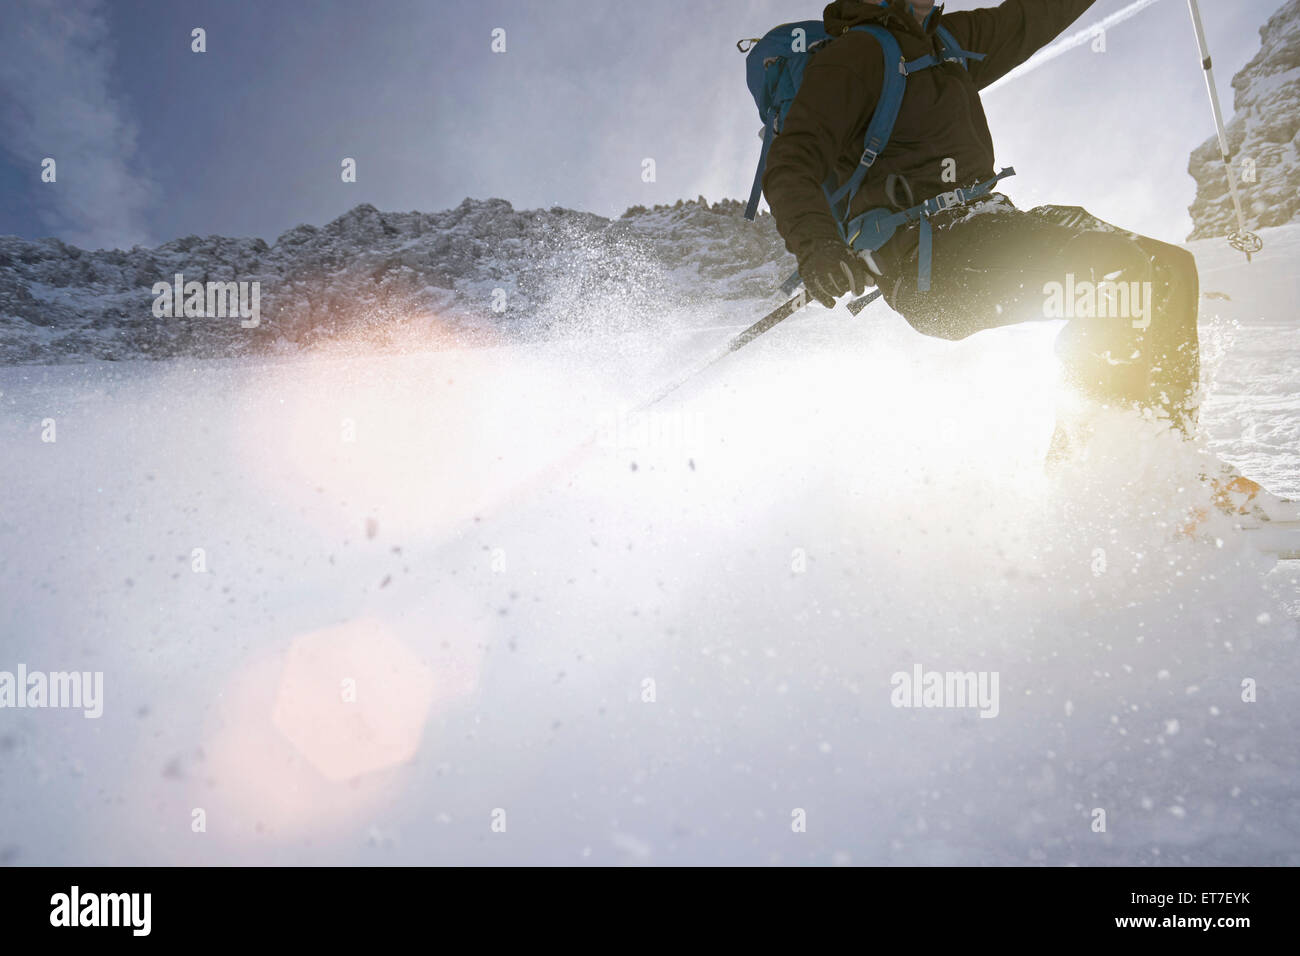 Low section view of man skiing, Bavaria, Germany - Stock Image